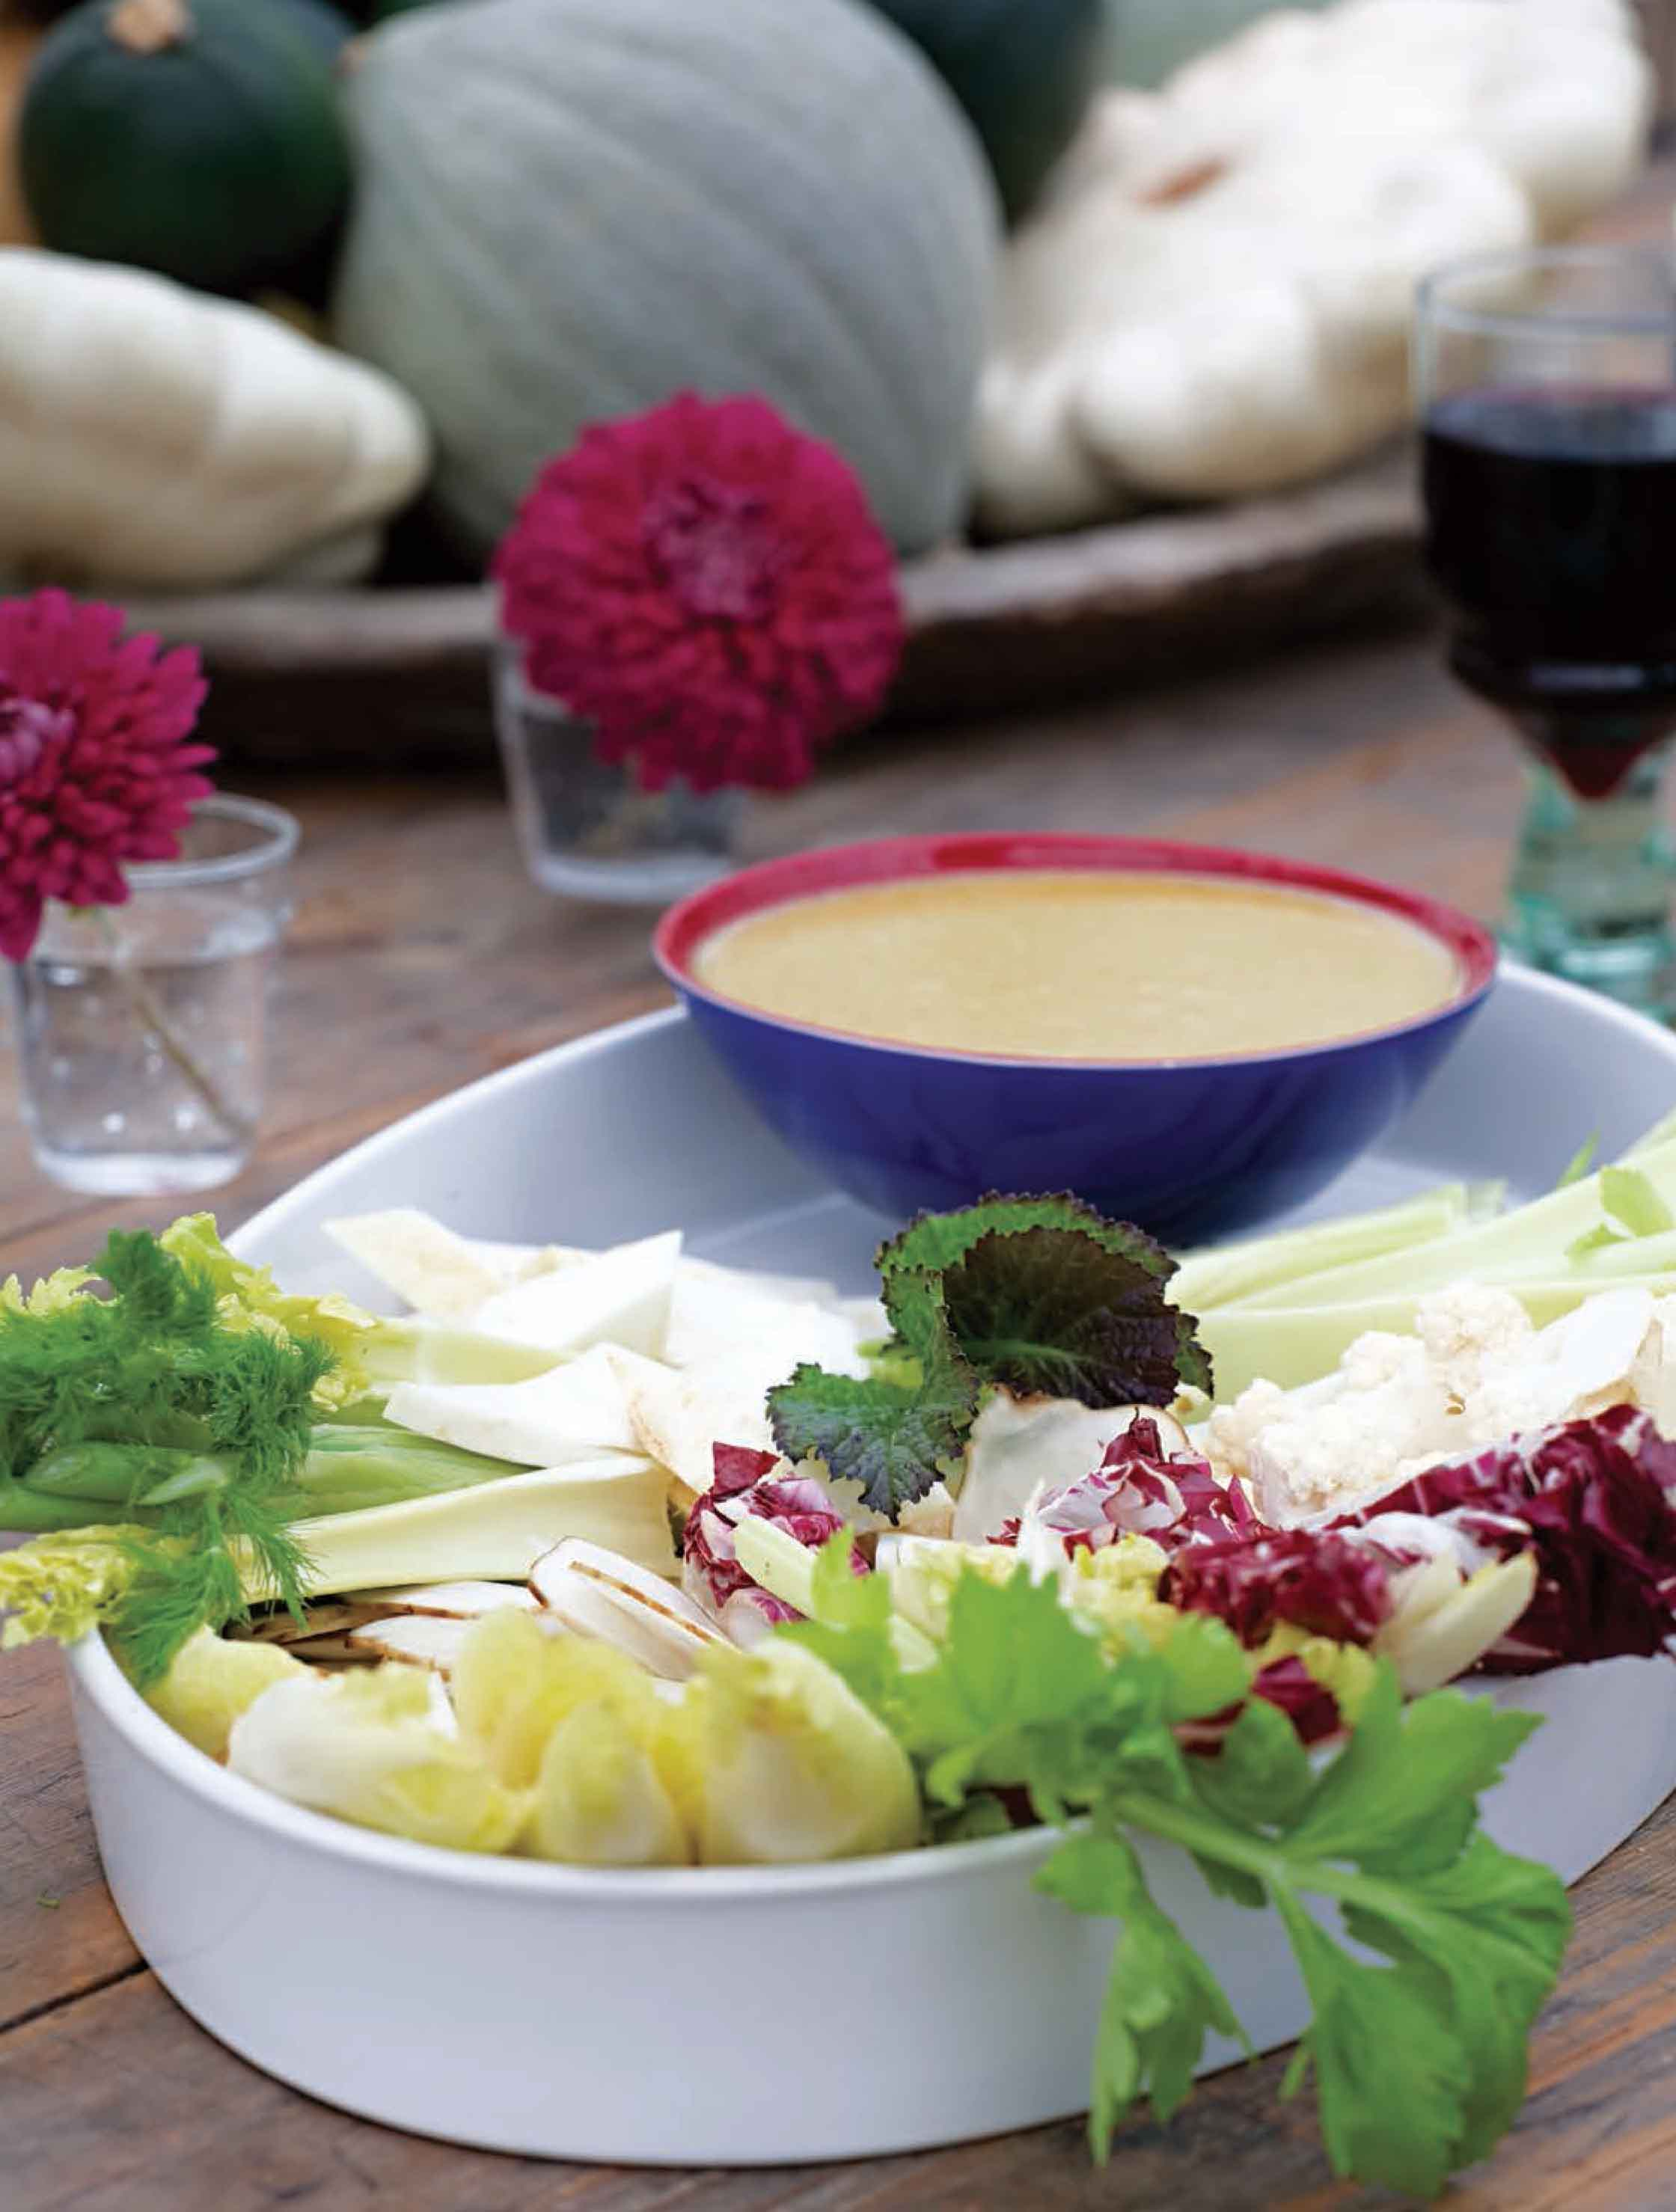 Winter bagna cauda